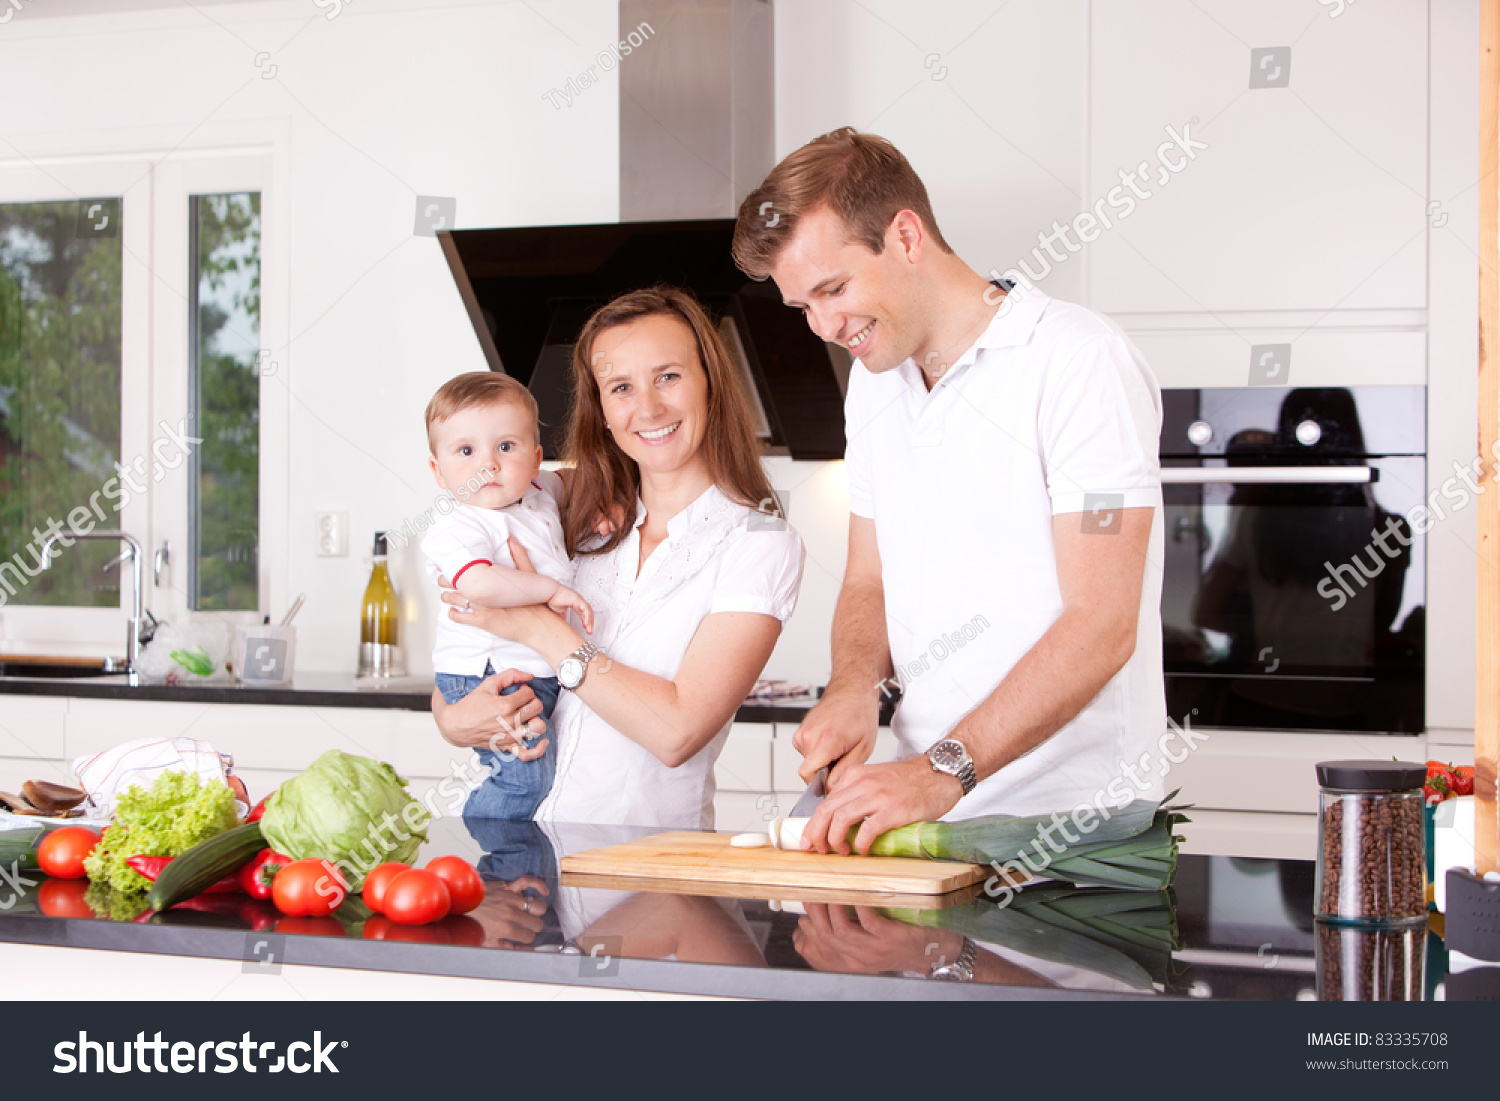 Family cooking kitchen - Happy Family At Home In The Kitchen Cooking Making A Meal